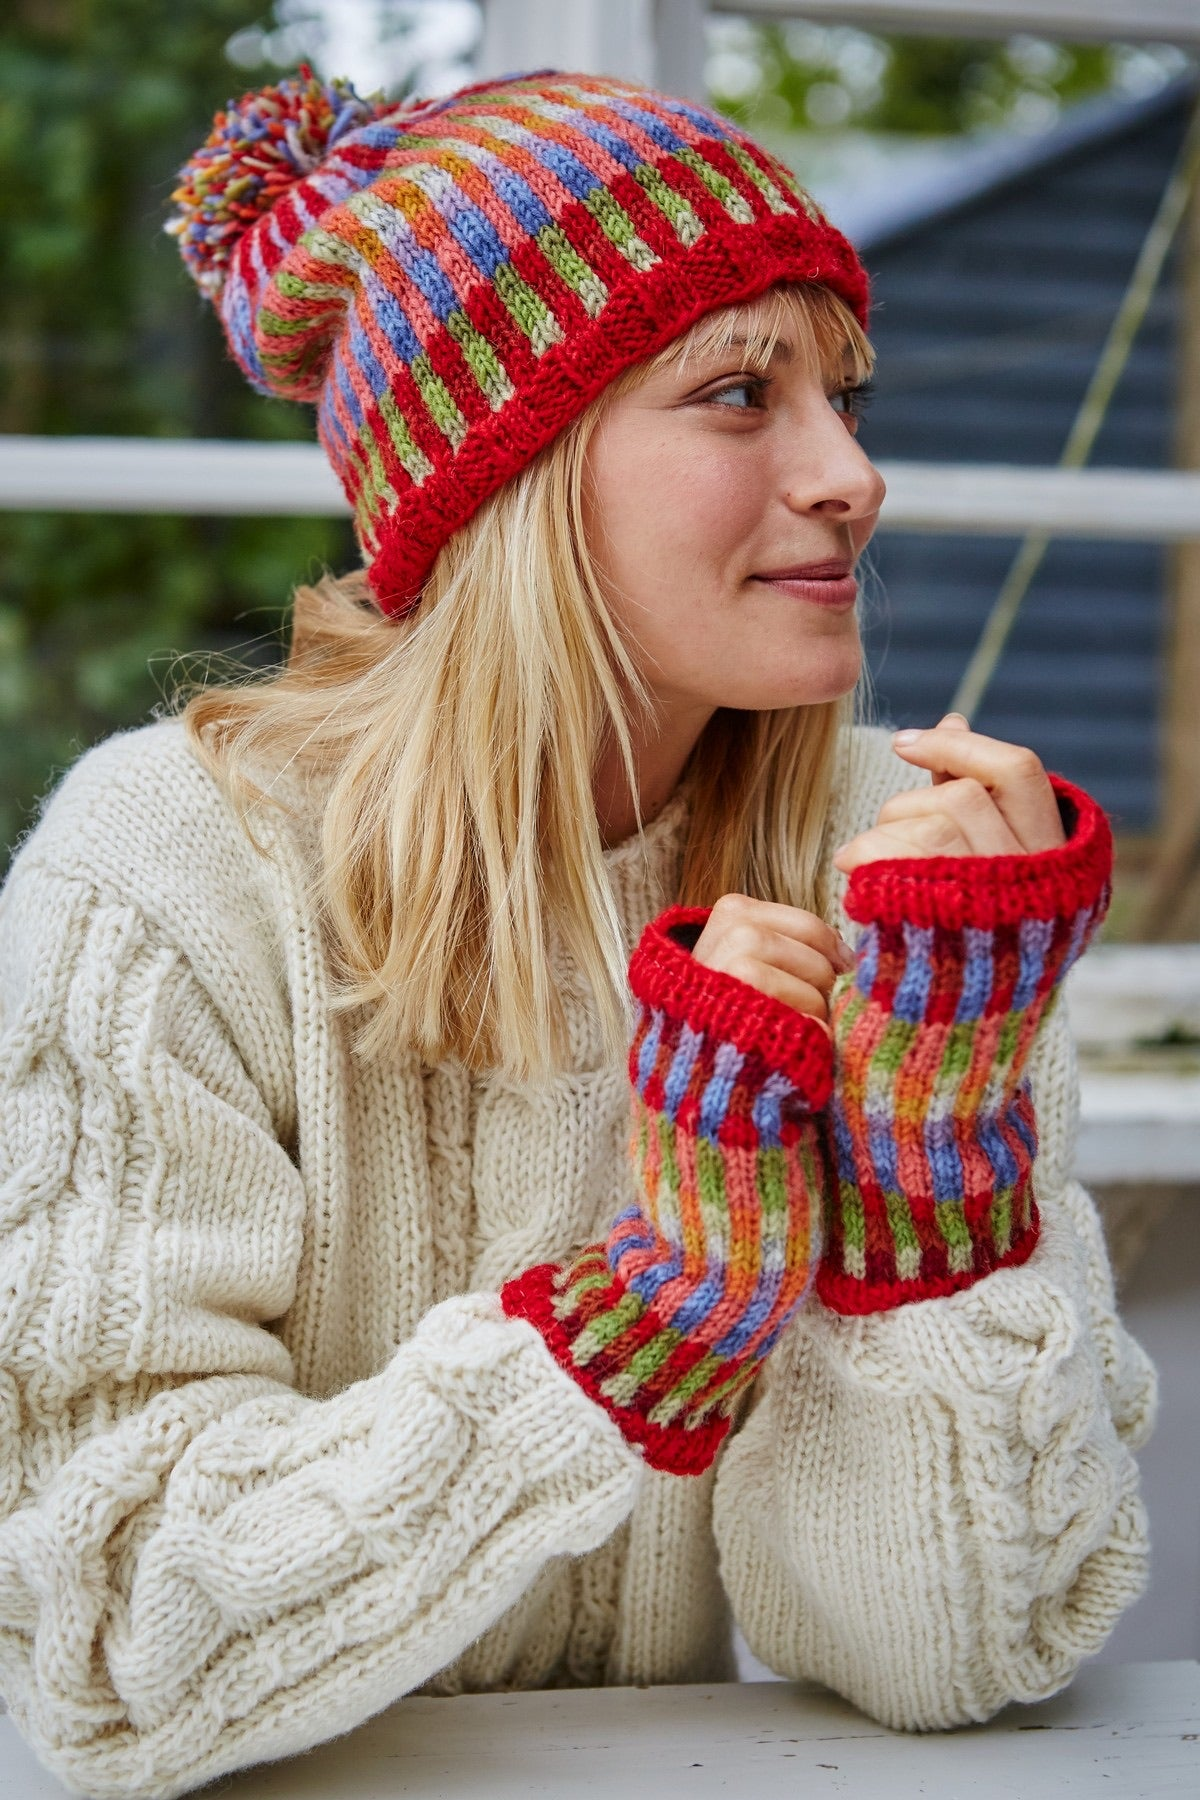 Pachamama wool accessories - Arundel